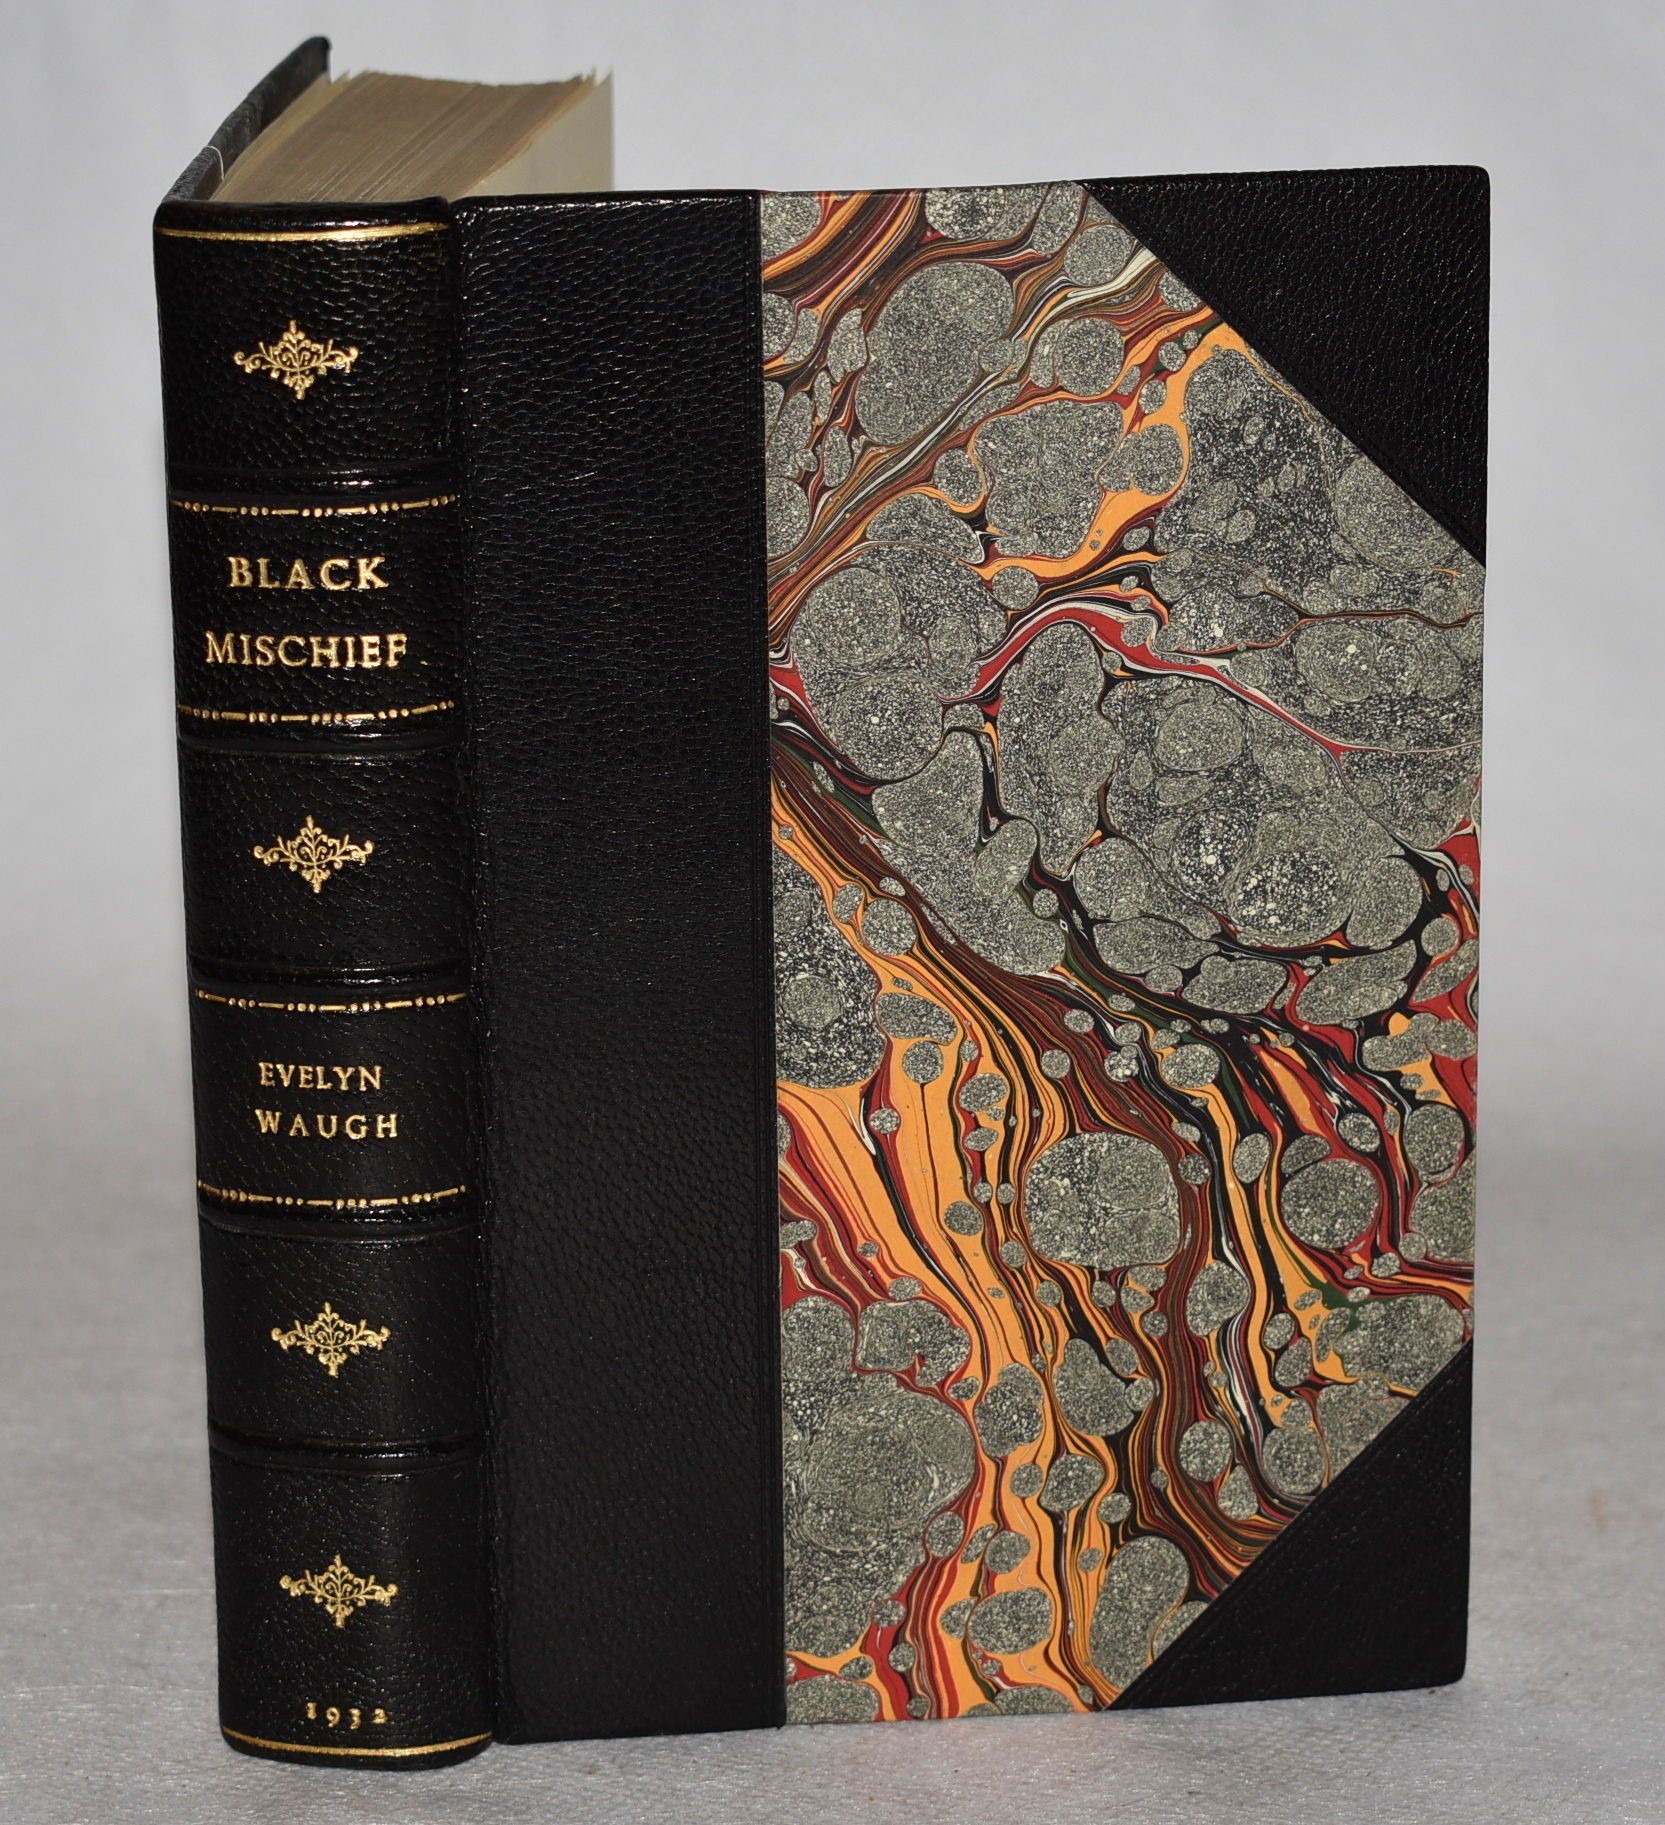 Image for Black Mischief. In Stunning Leather Fine Binding.